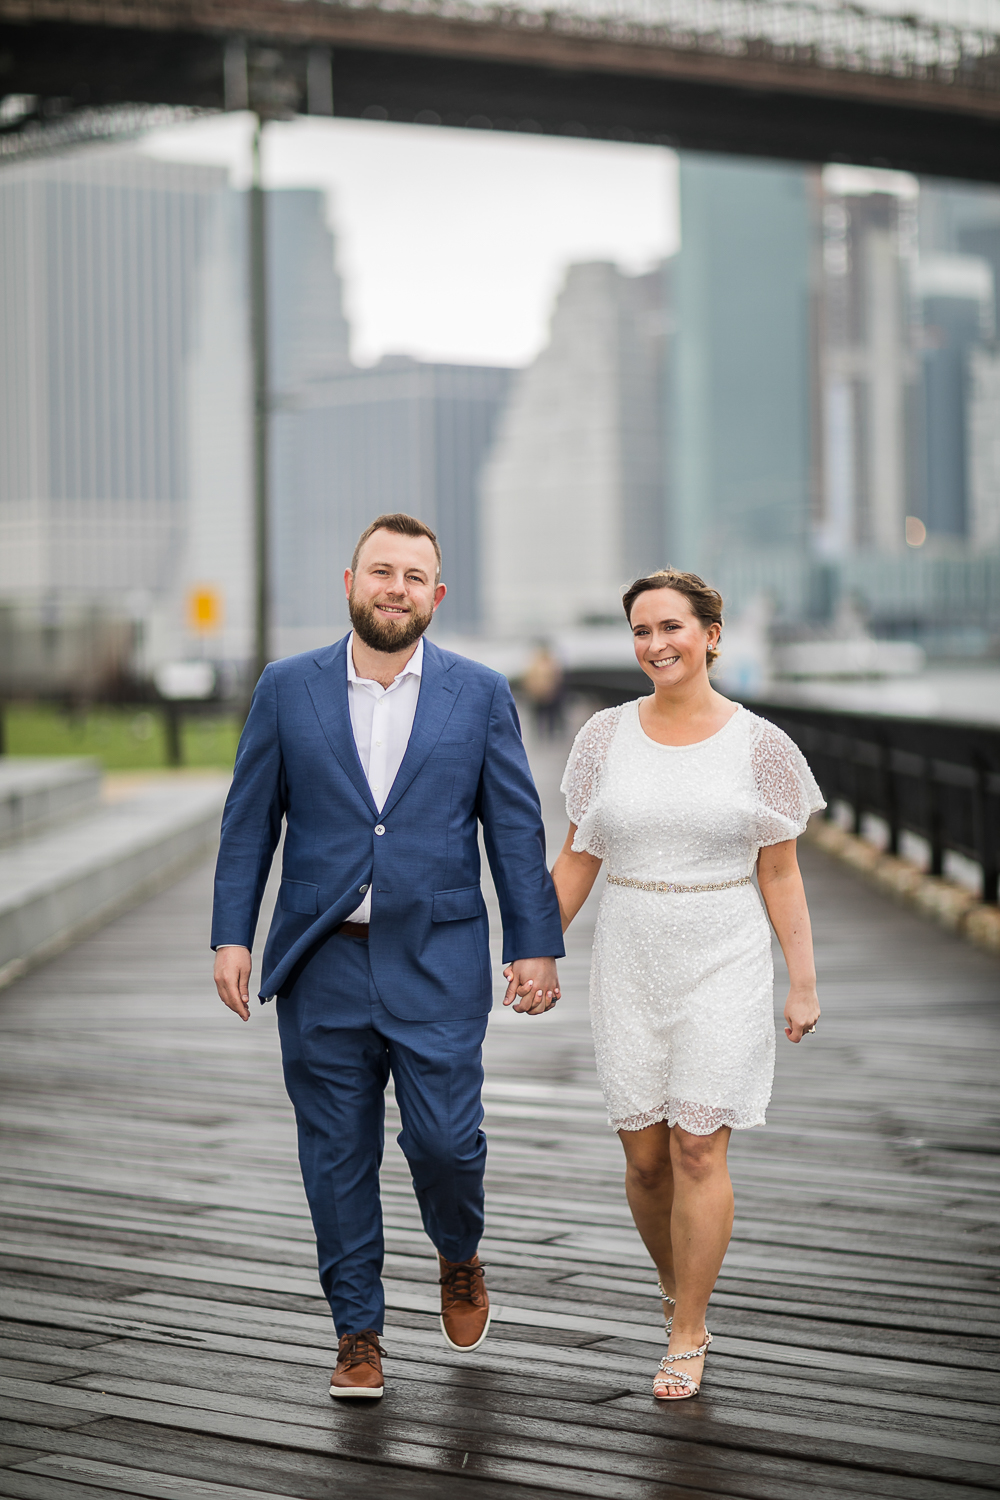 Outdoor wedding photos in New York City. | Intimate Wedding at the Malthouse in Manhattan, New York City.